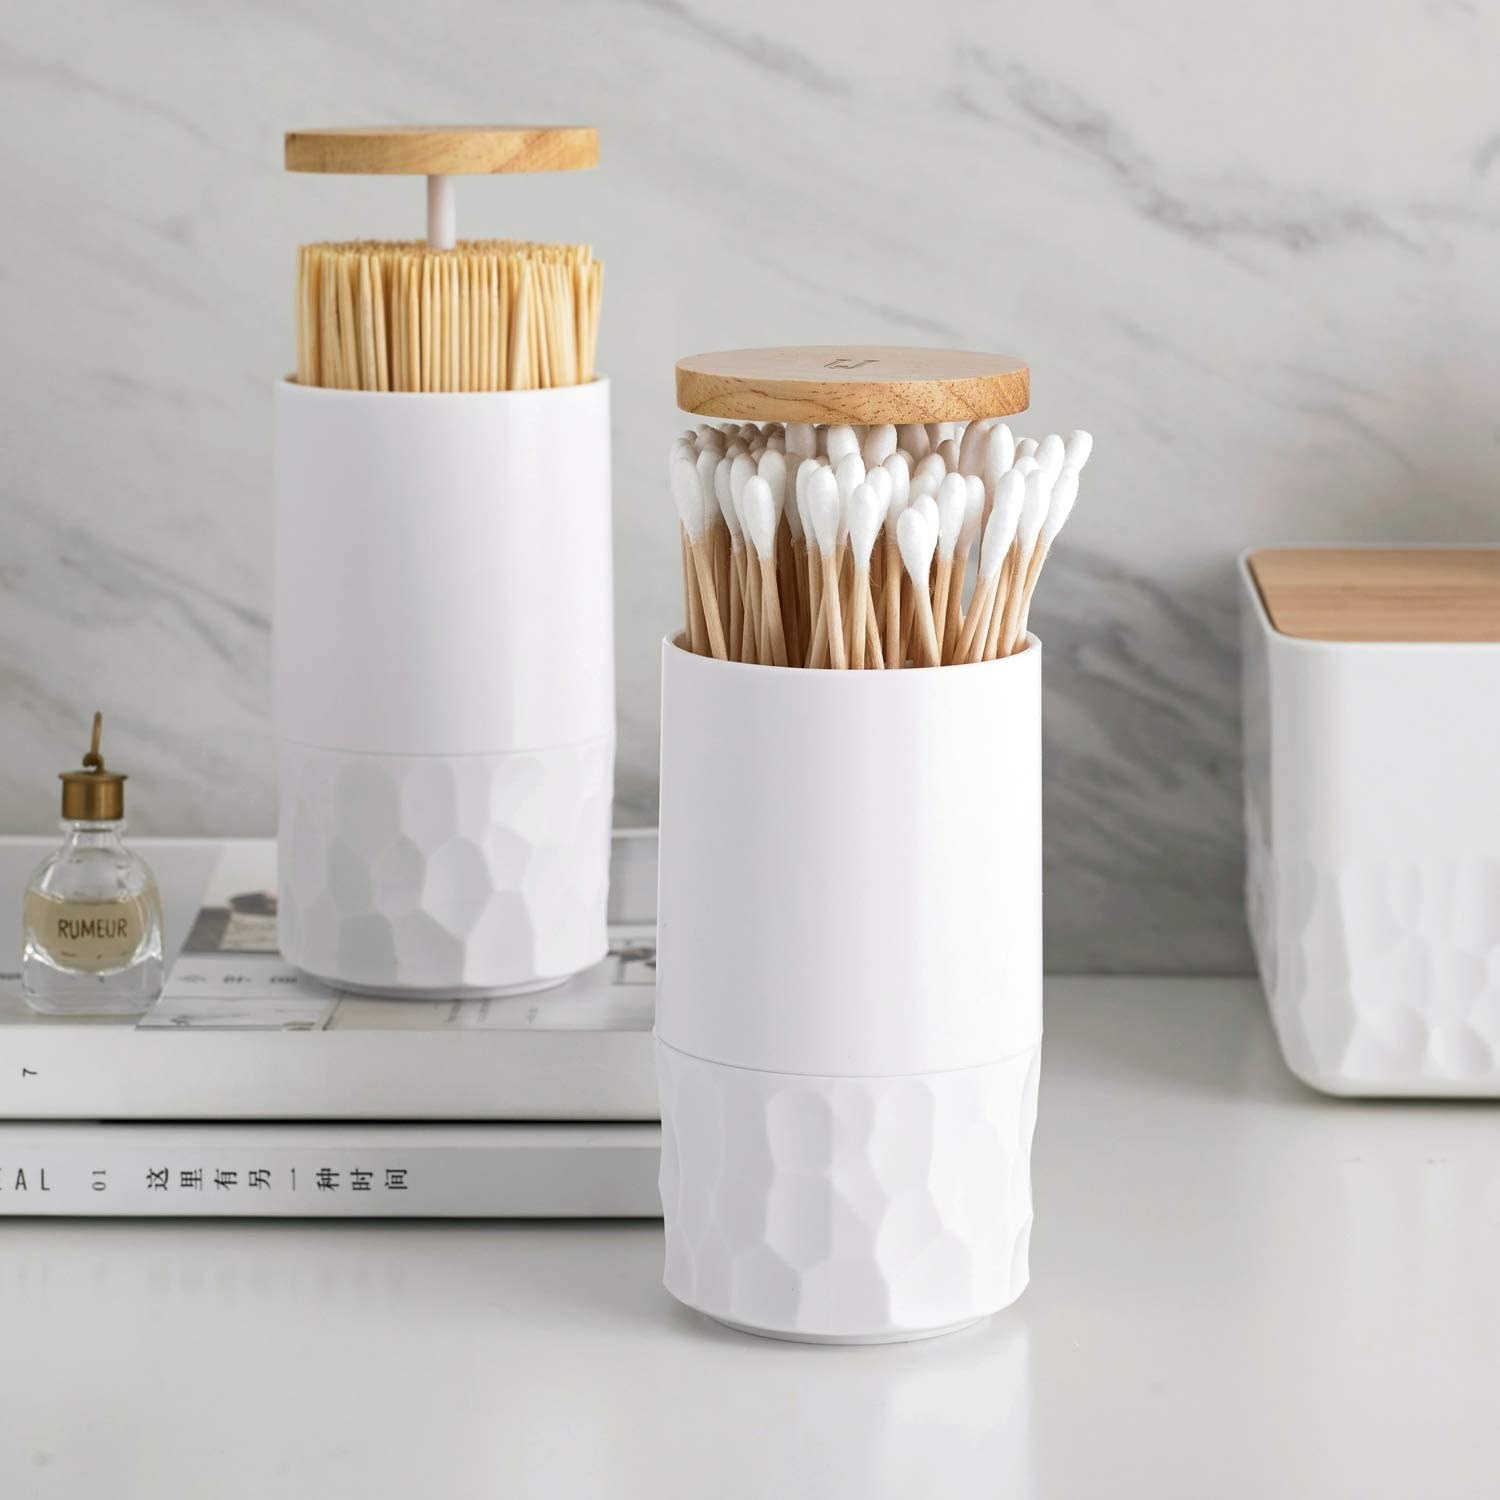 White upright jar with textured base and wooden push top with q-tips in it